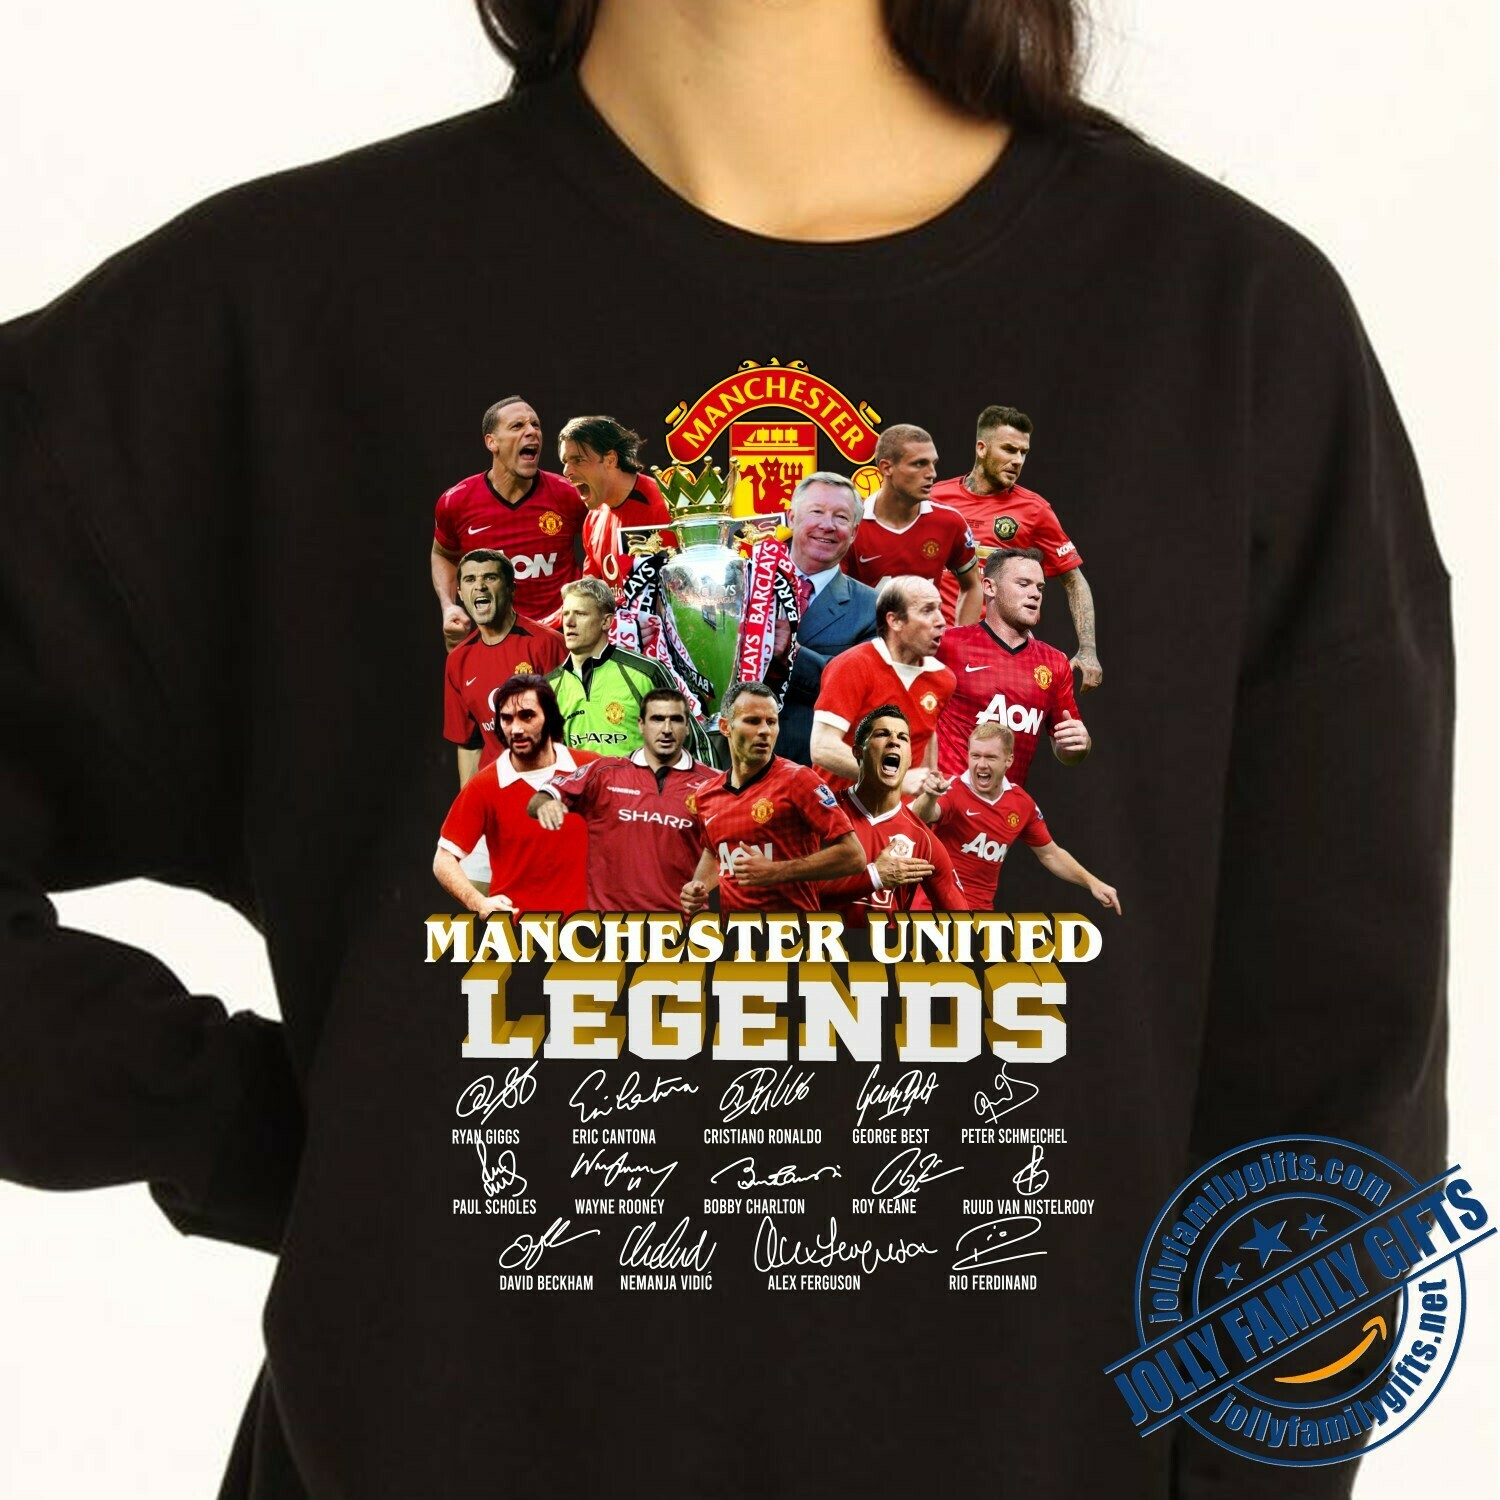 MU FC Manchester United Legends 1878-2020 Thank you for the memories Team Players Signatures  T-Shirt Hoodie Sweatshirt Sweater Tee Kids Youth Gifts Jolly Family Gifts